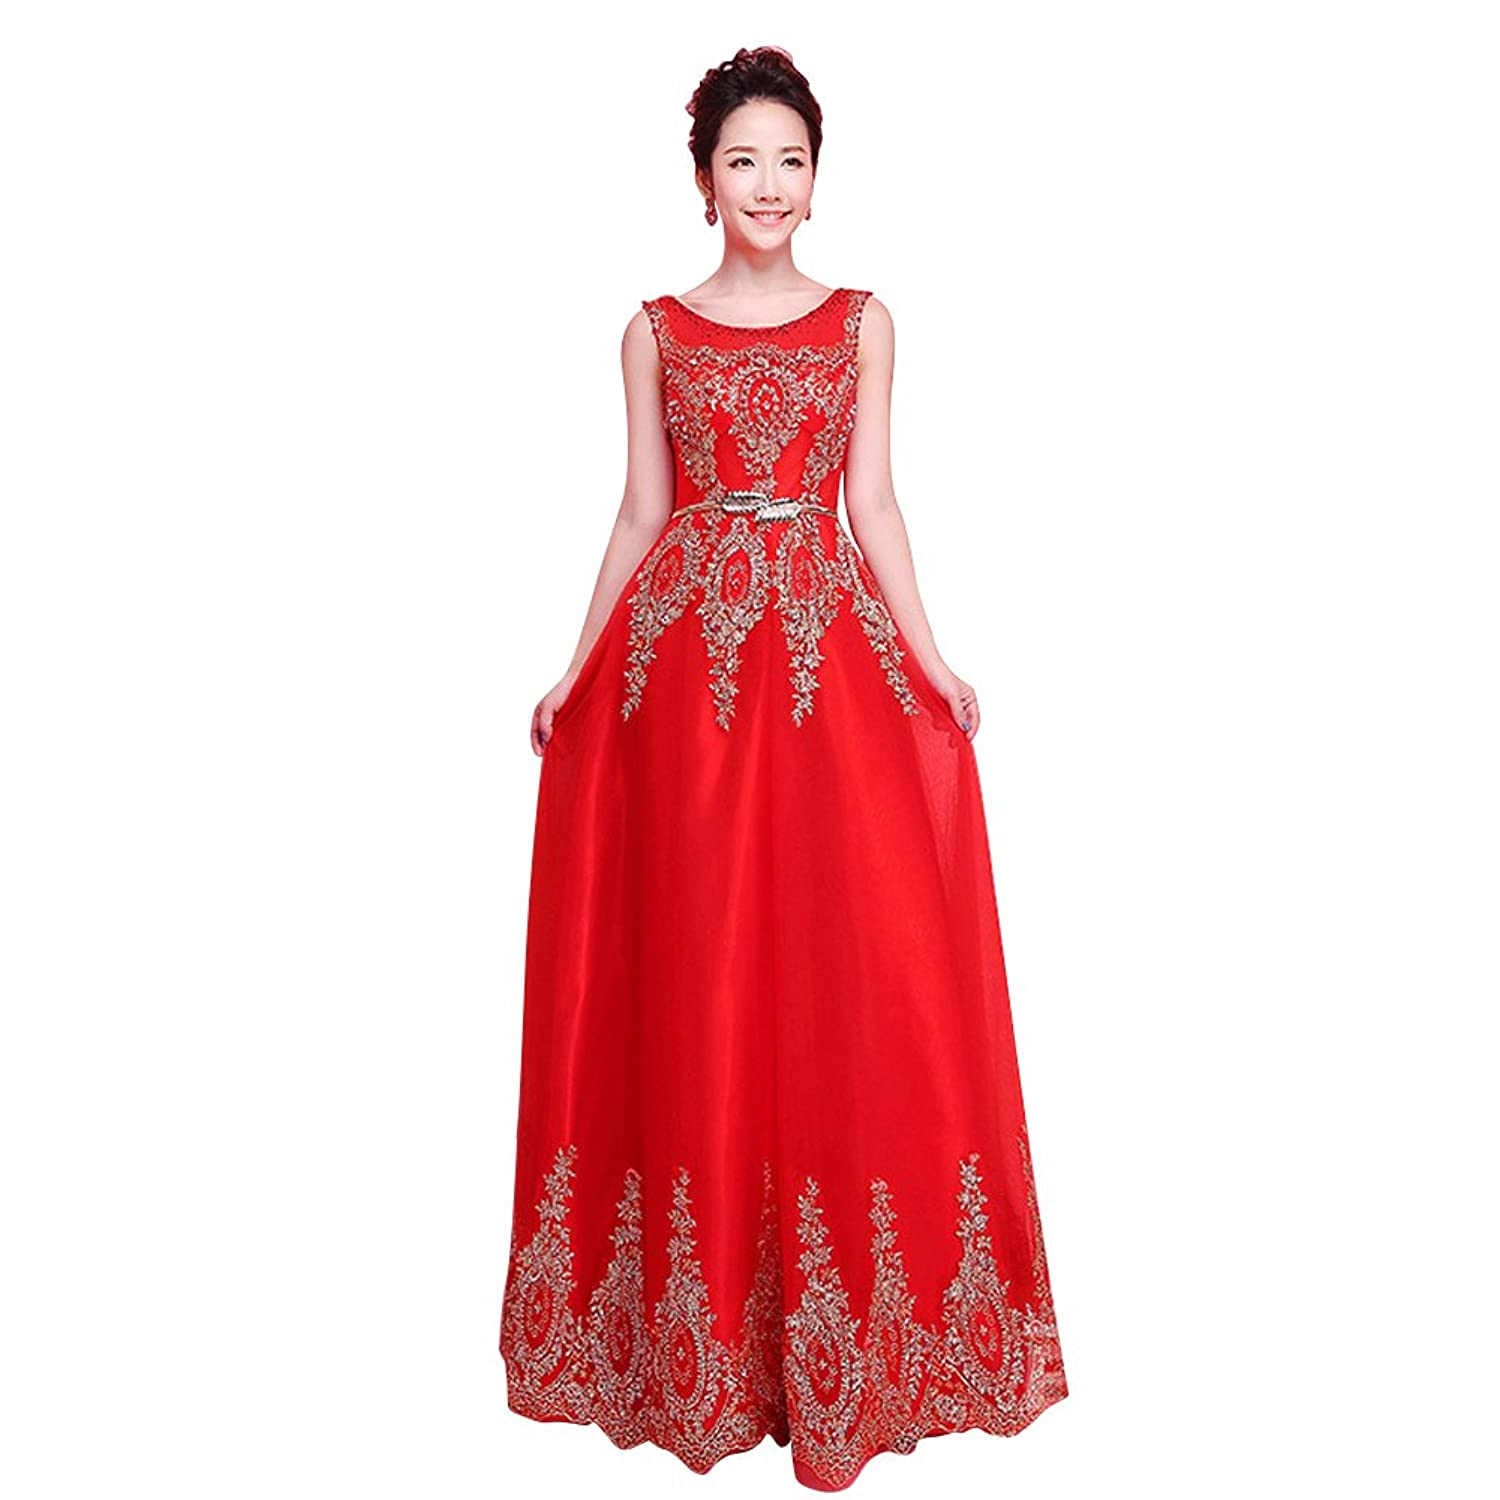 Vimans? 2016 Sexy Long Sleeveless Lace Beaded Bridesmaid Dresses for Women